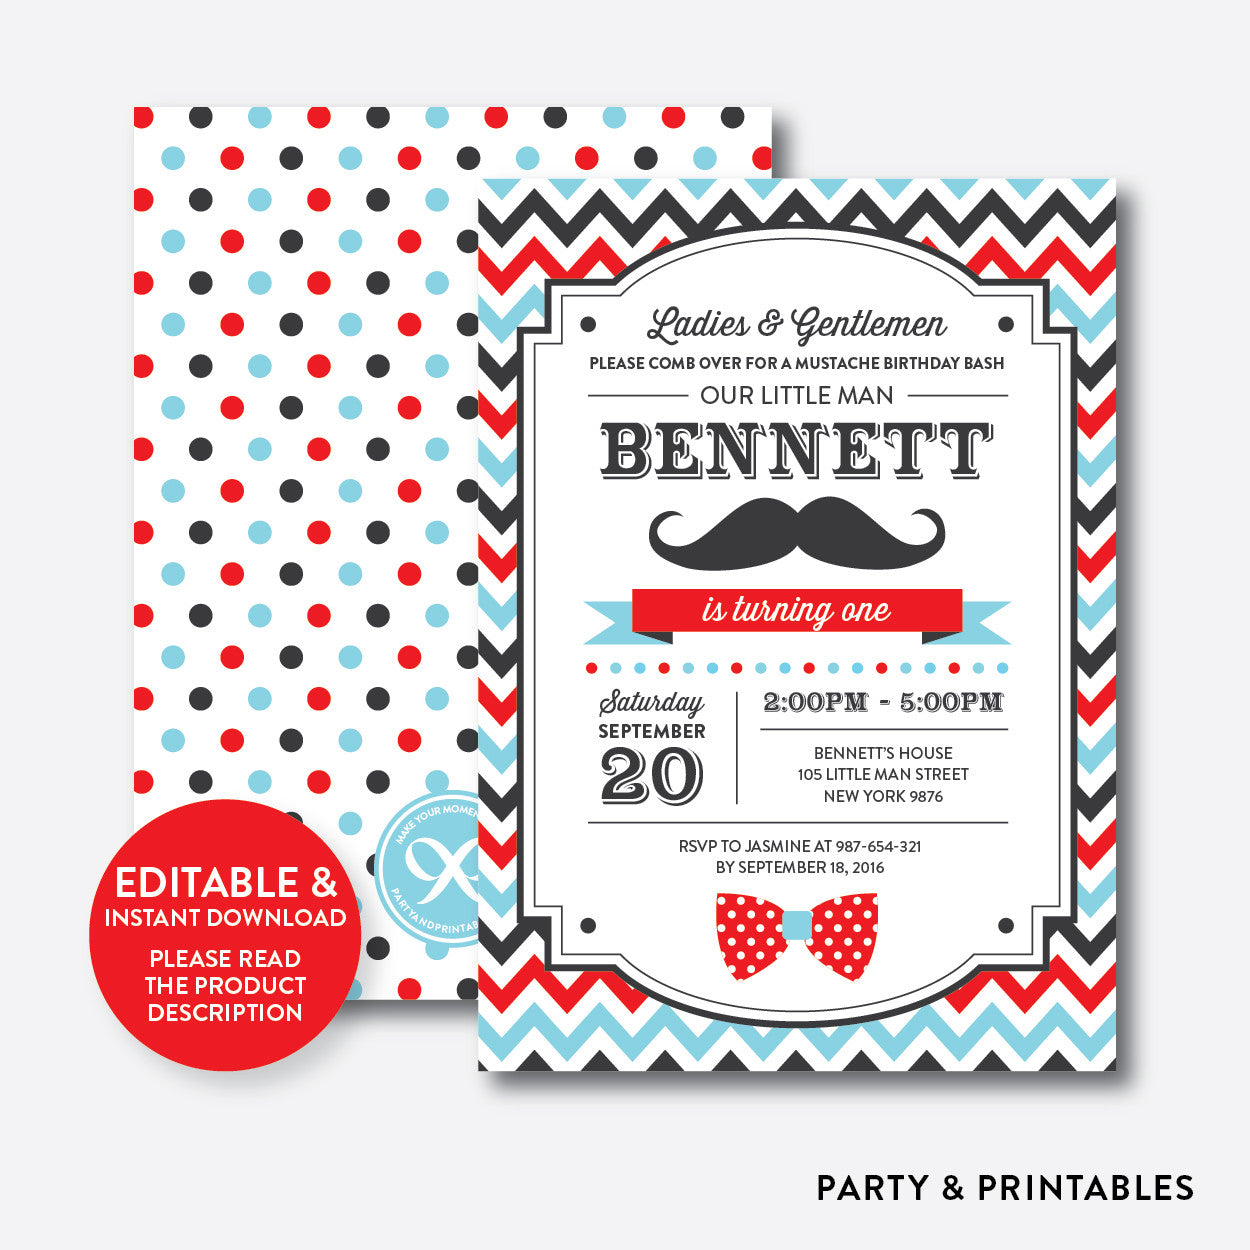 Mustache Kids Birthday Invitation / Editable / Instant Download (SKB.27), invitation - Party and Printables